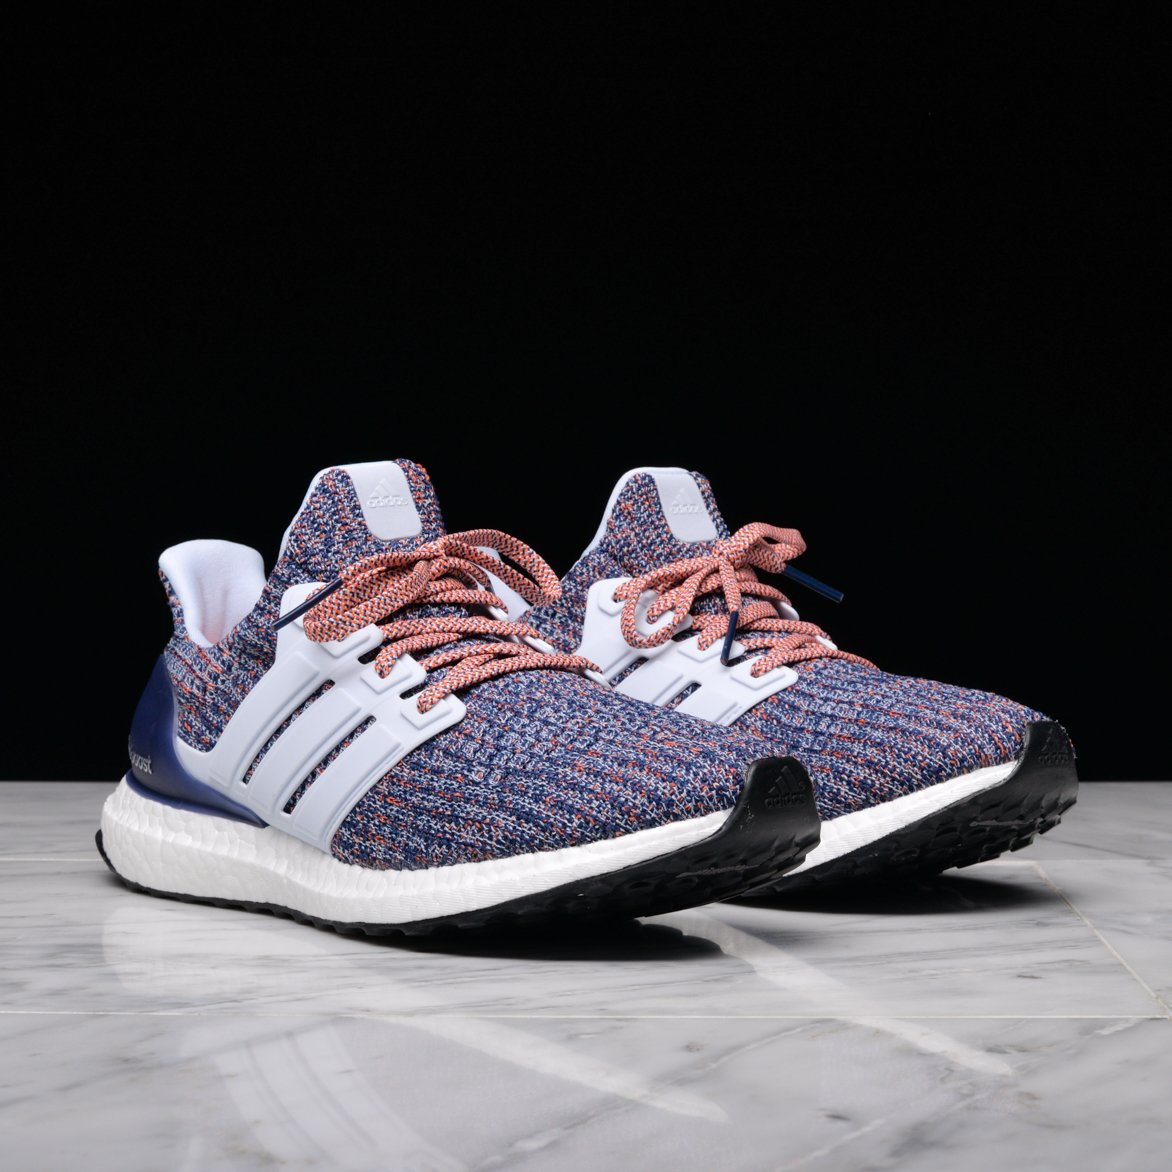 WMNS ULTRABOOST 4.0 - MULTI-COLOR